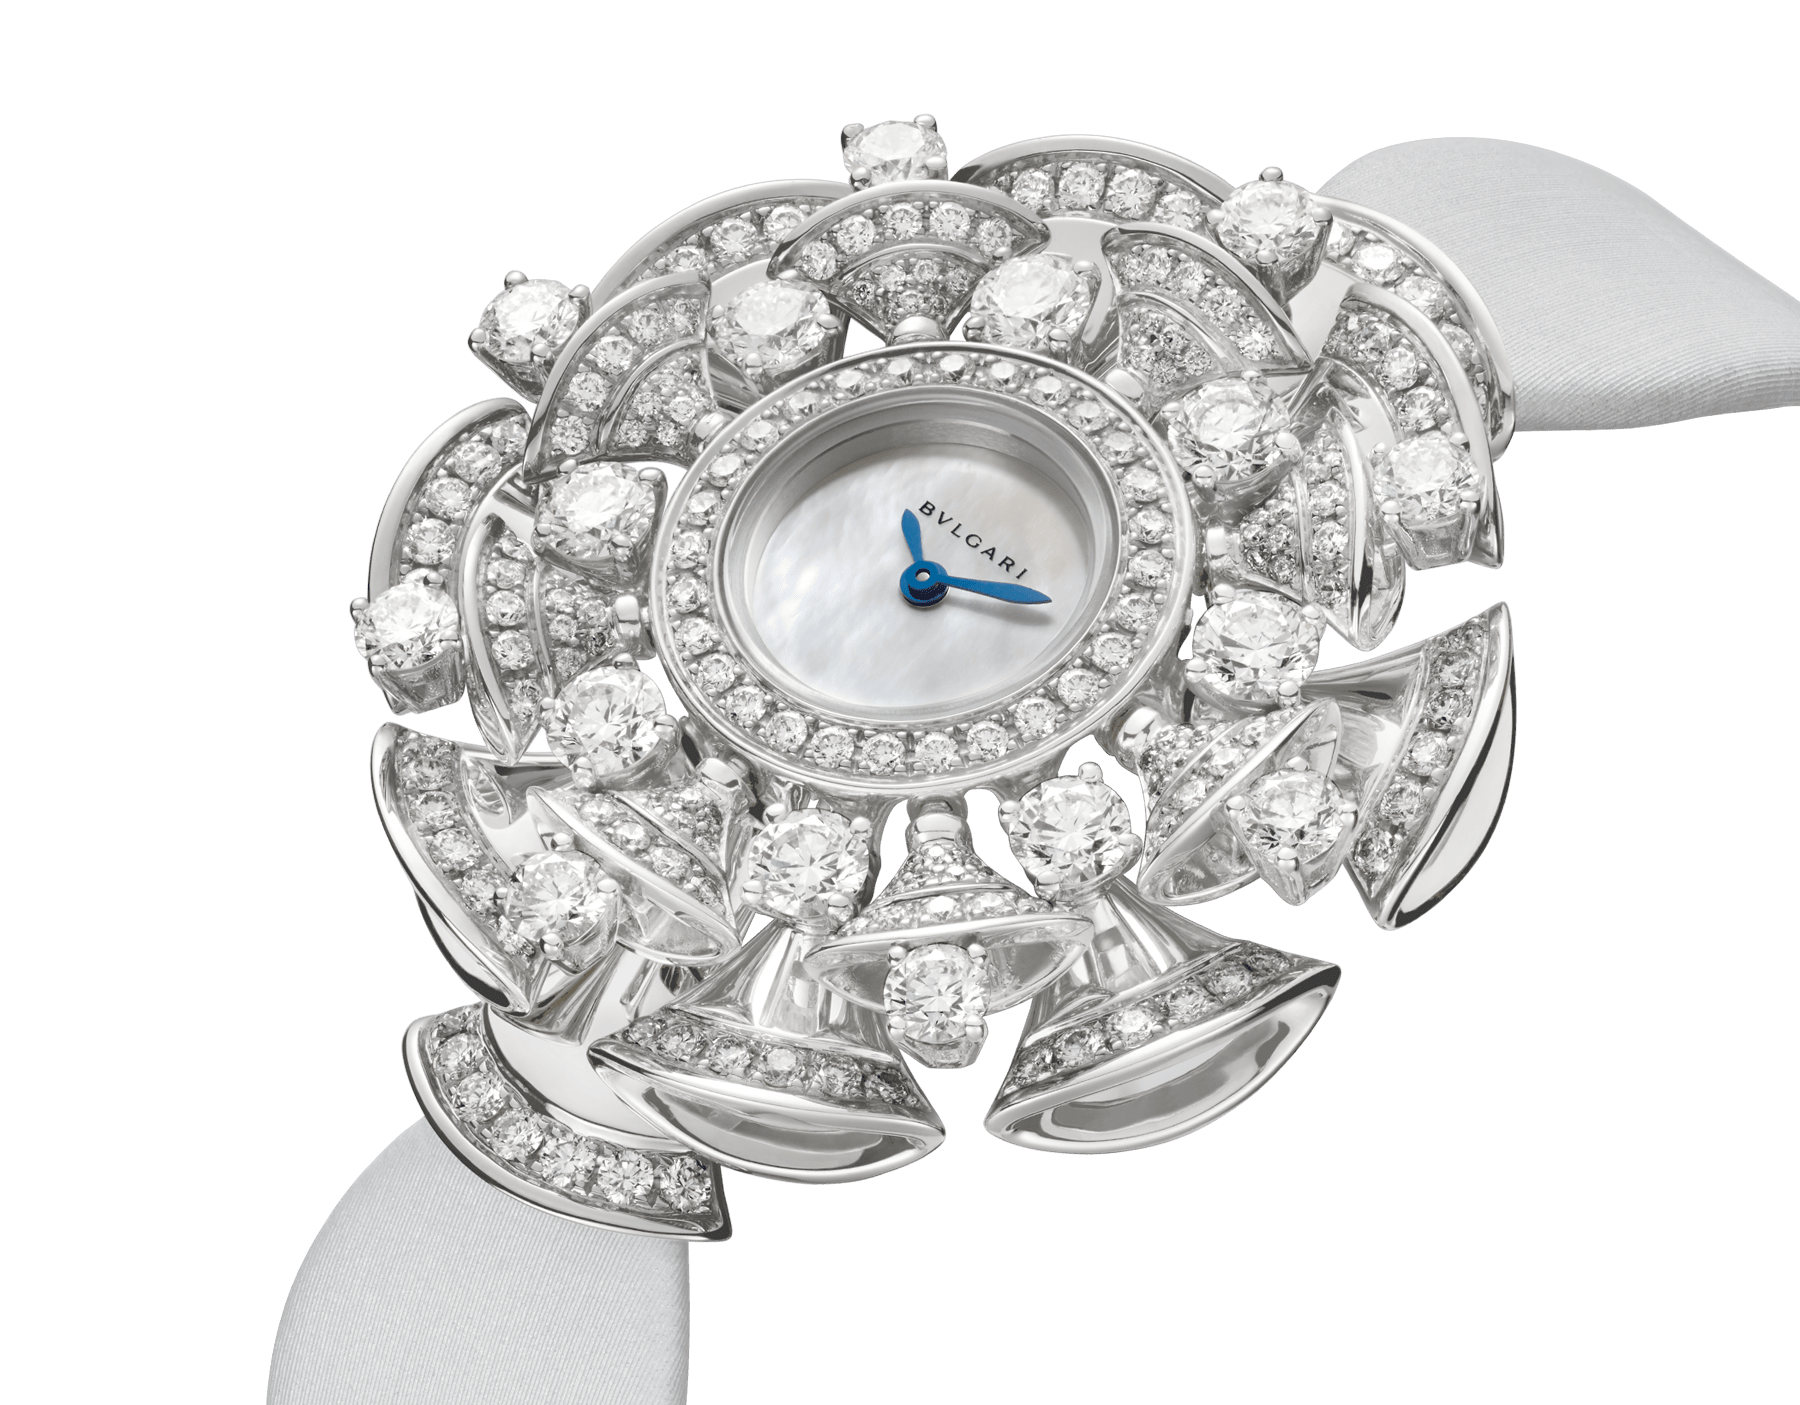 DIVAS' DREAM watch with 18 kt white gold case set with brilliant and round-cut diamonds, white mother-of-pearl dial and grey satin bracelet 102254 image 2